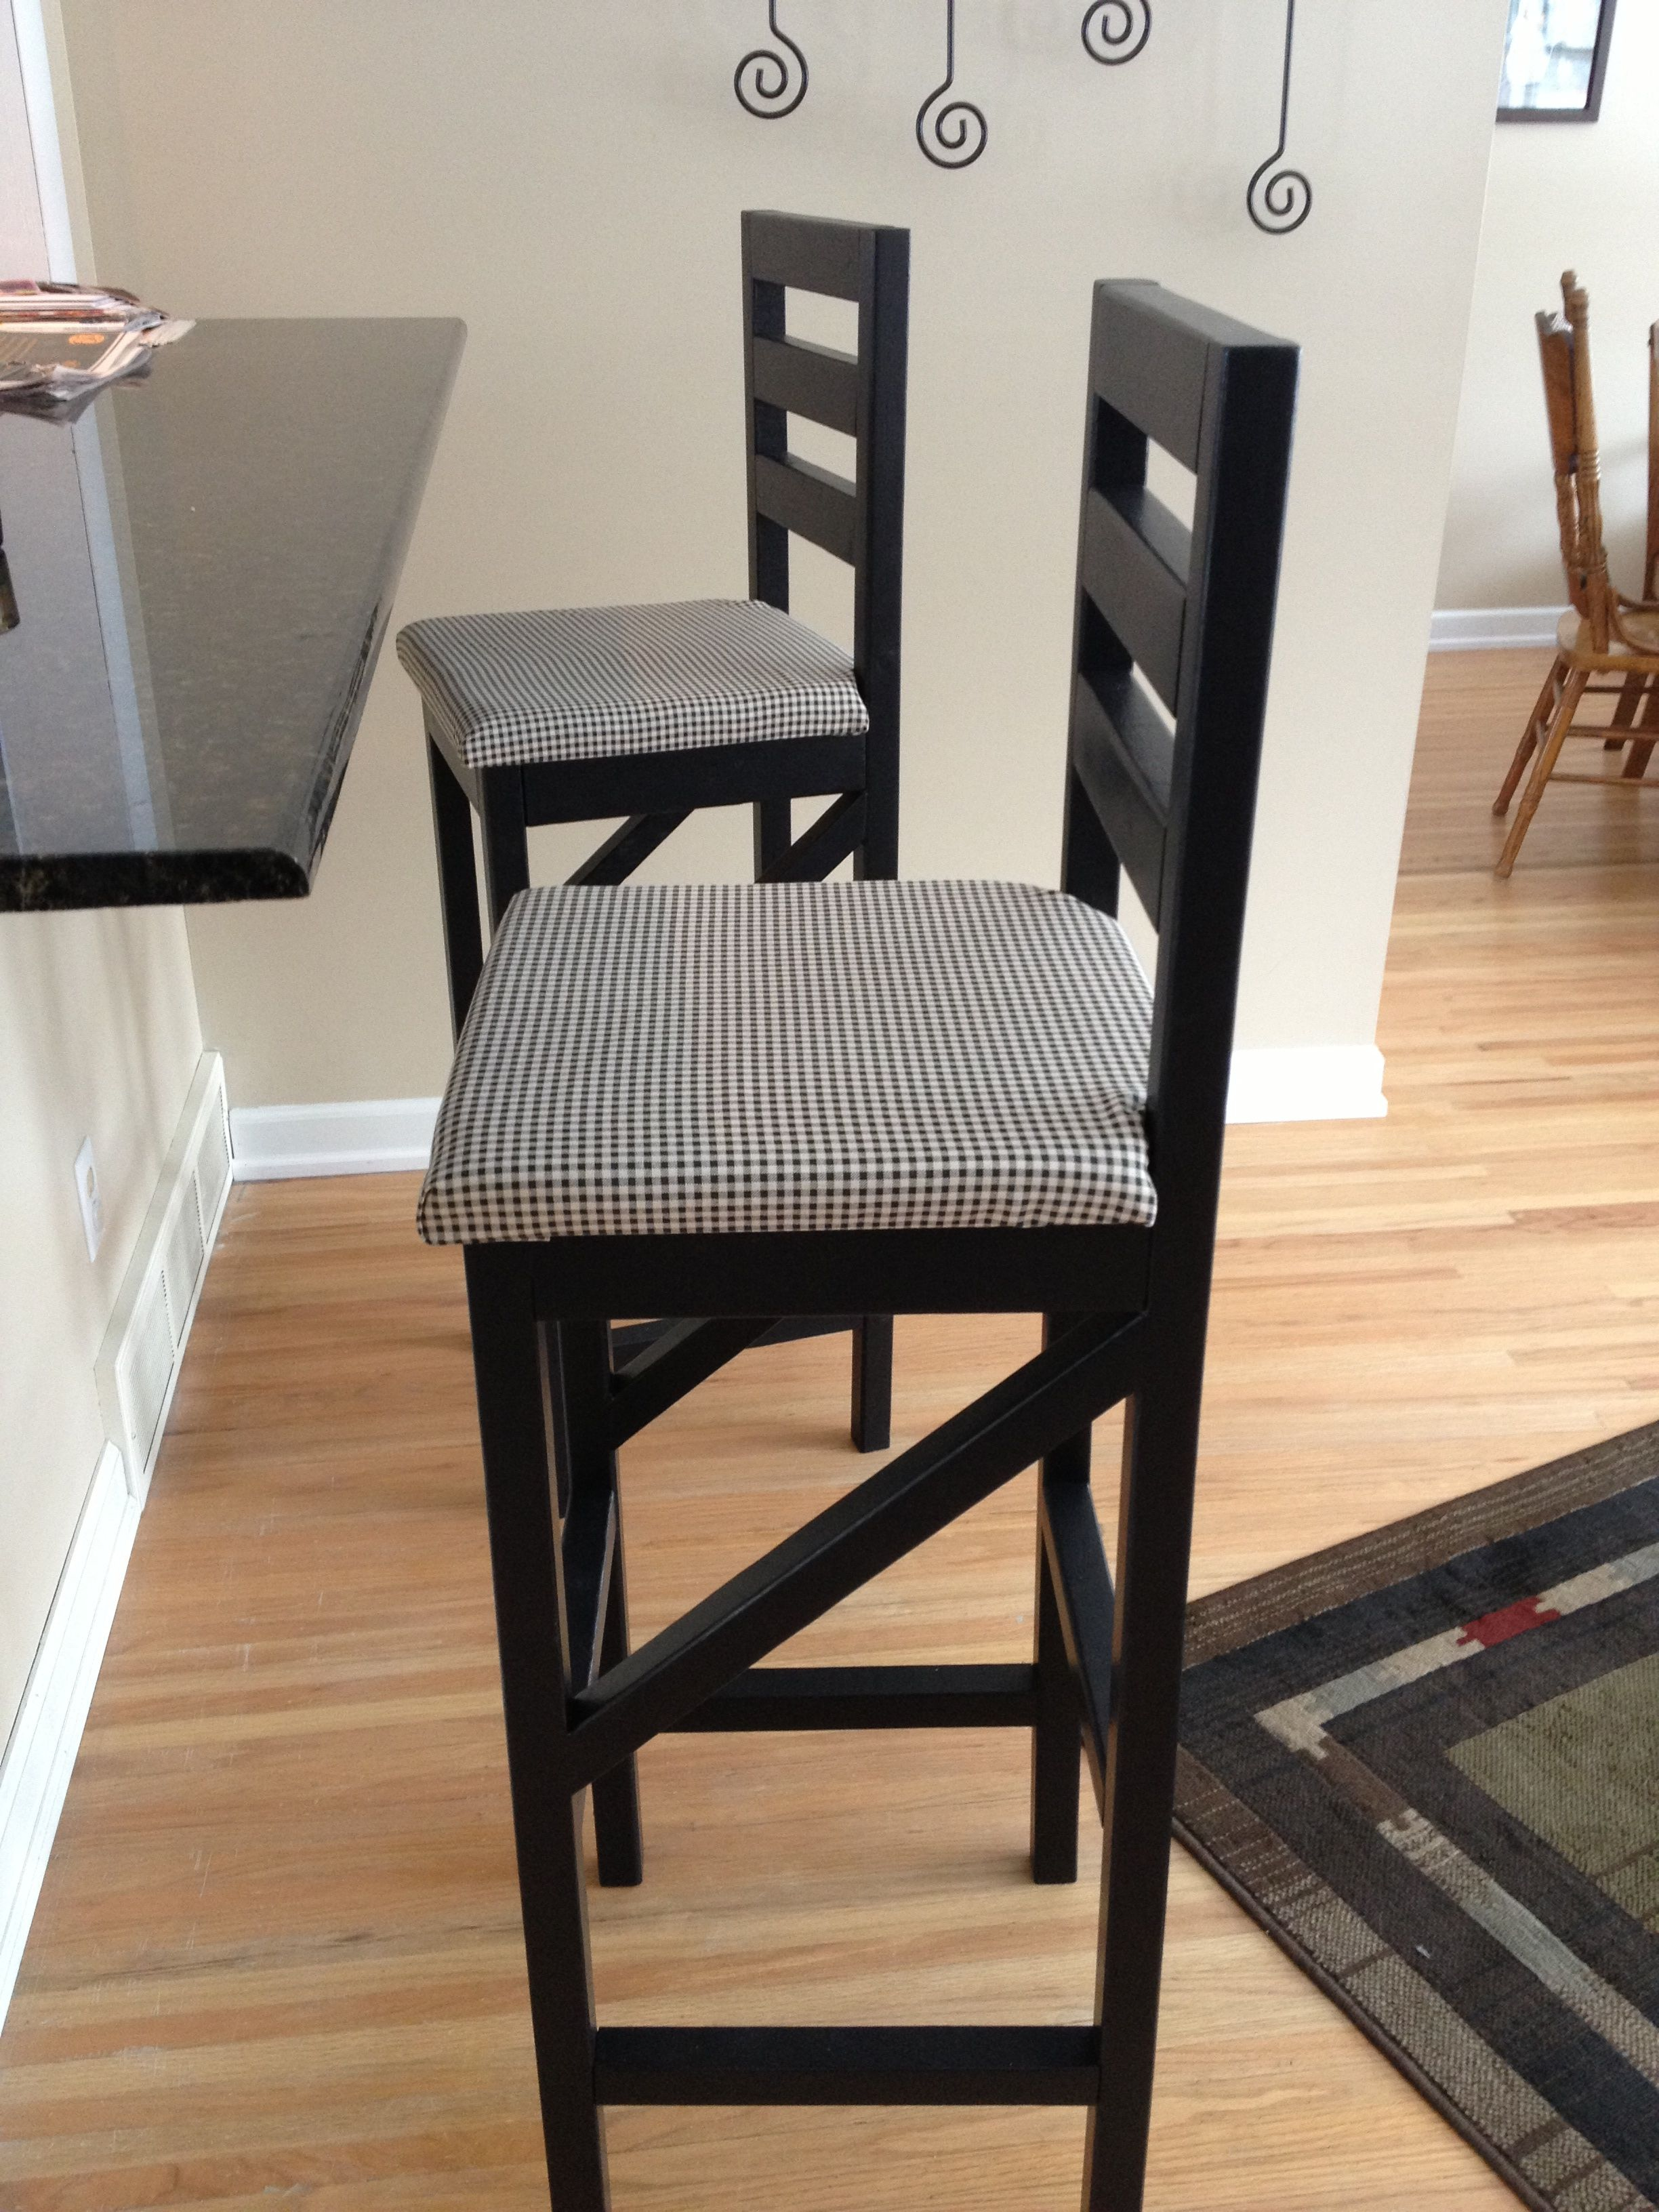 Extra tall bar stool do it yourself home projects from ana white